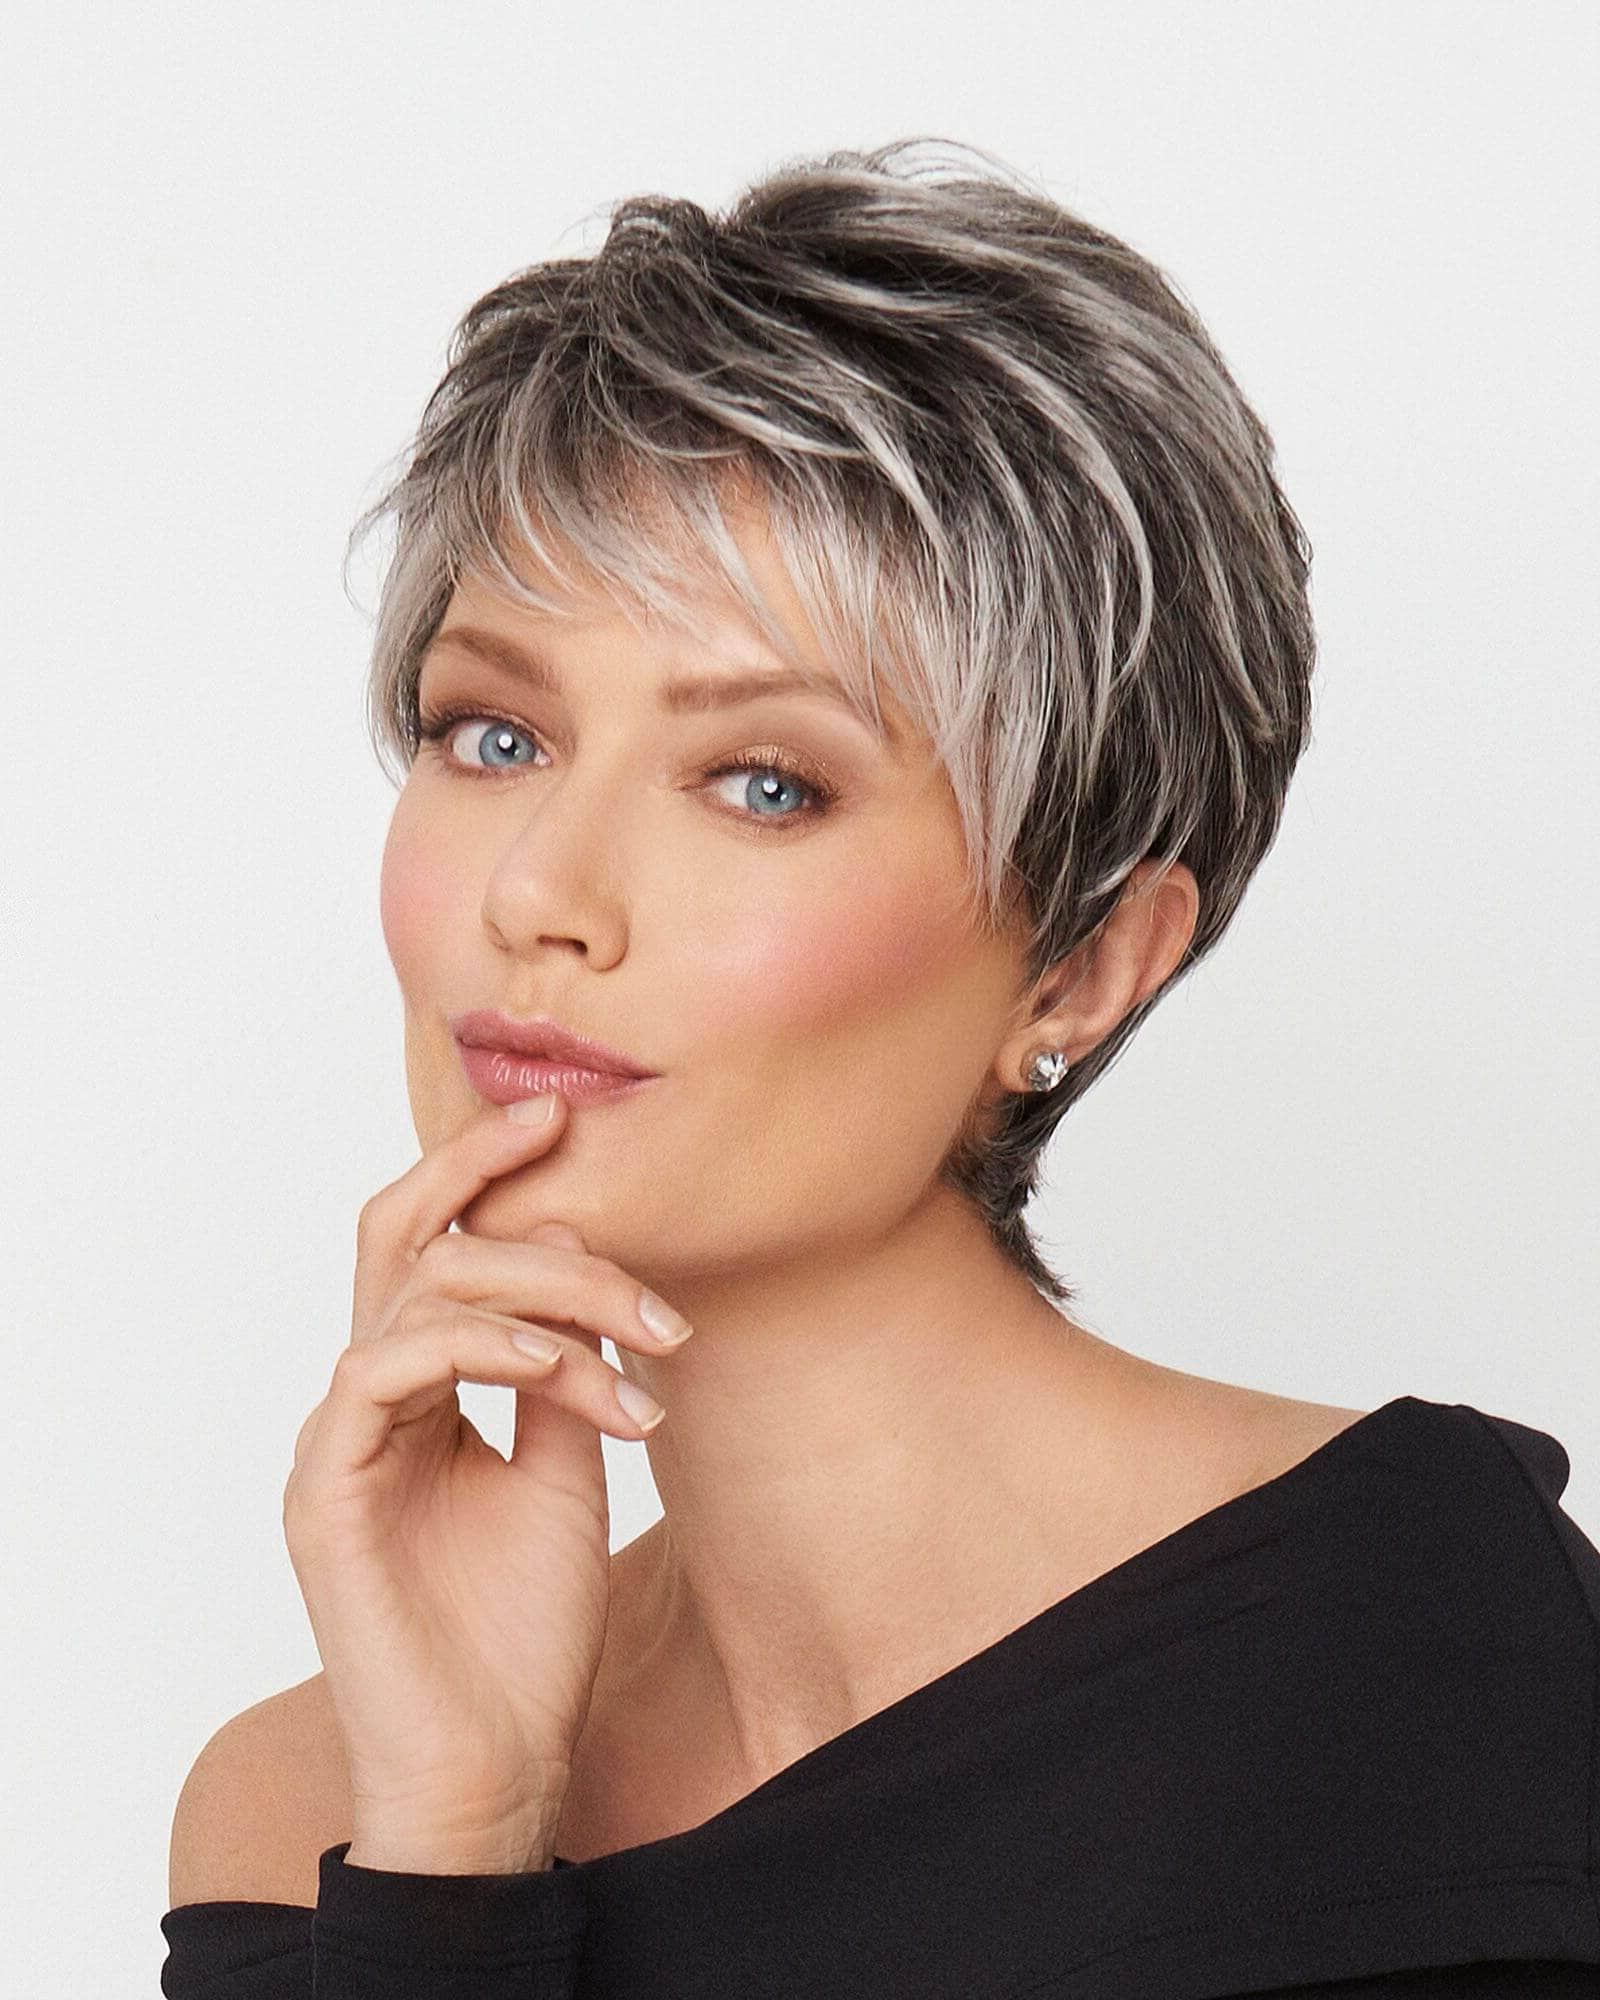 50 Pixie Haircuts You'll See Trending In 2018 With Regard To Pixie Layered Short Haircuts (View 11 of 25)